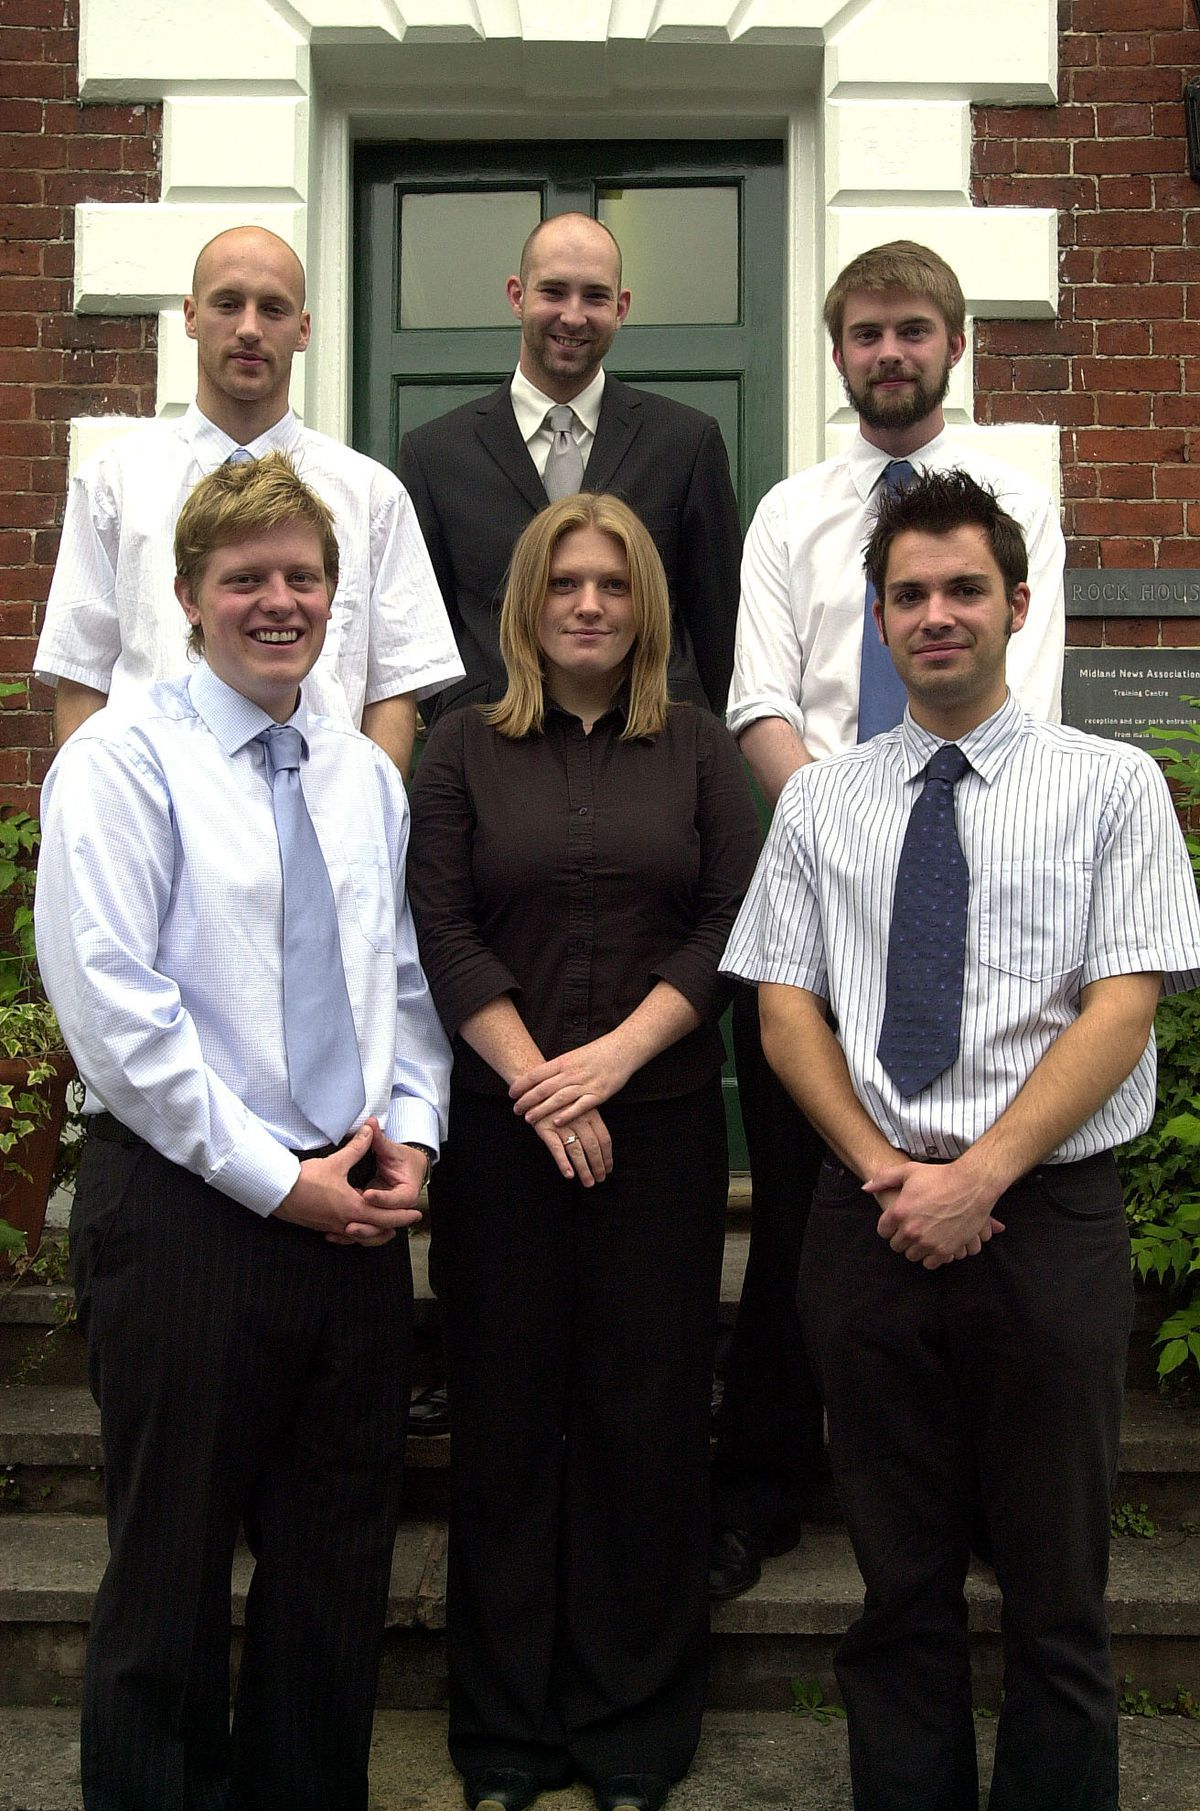 James Holt, front left, with fellow trainees at the start of his career with the Shropshire Star